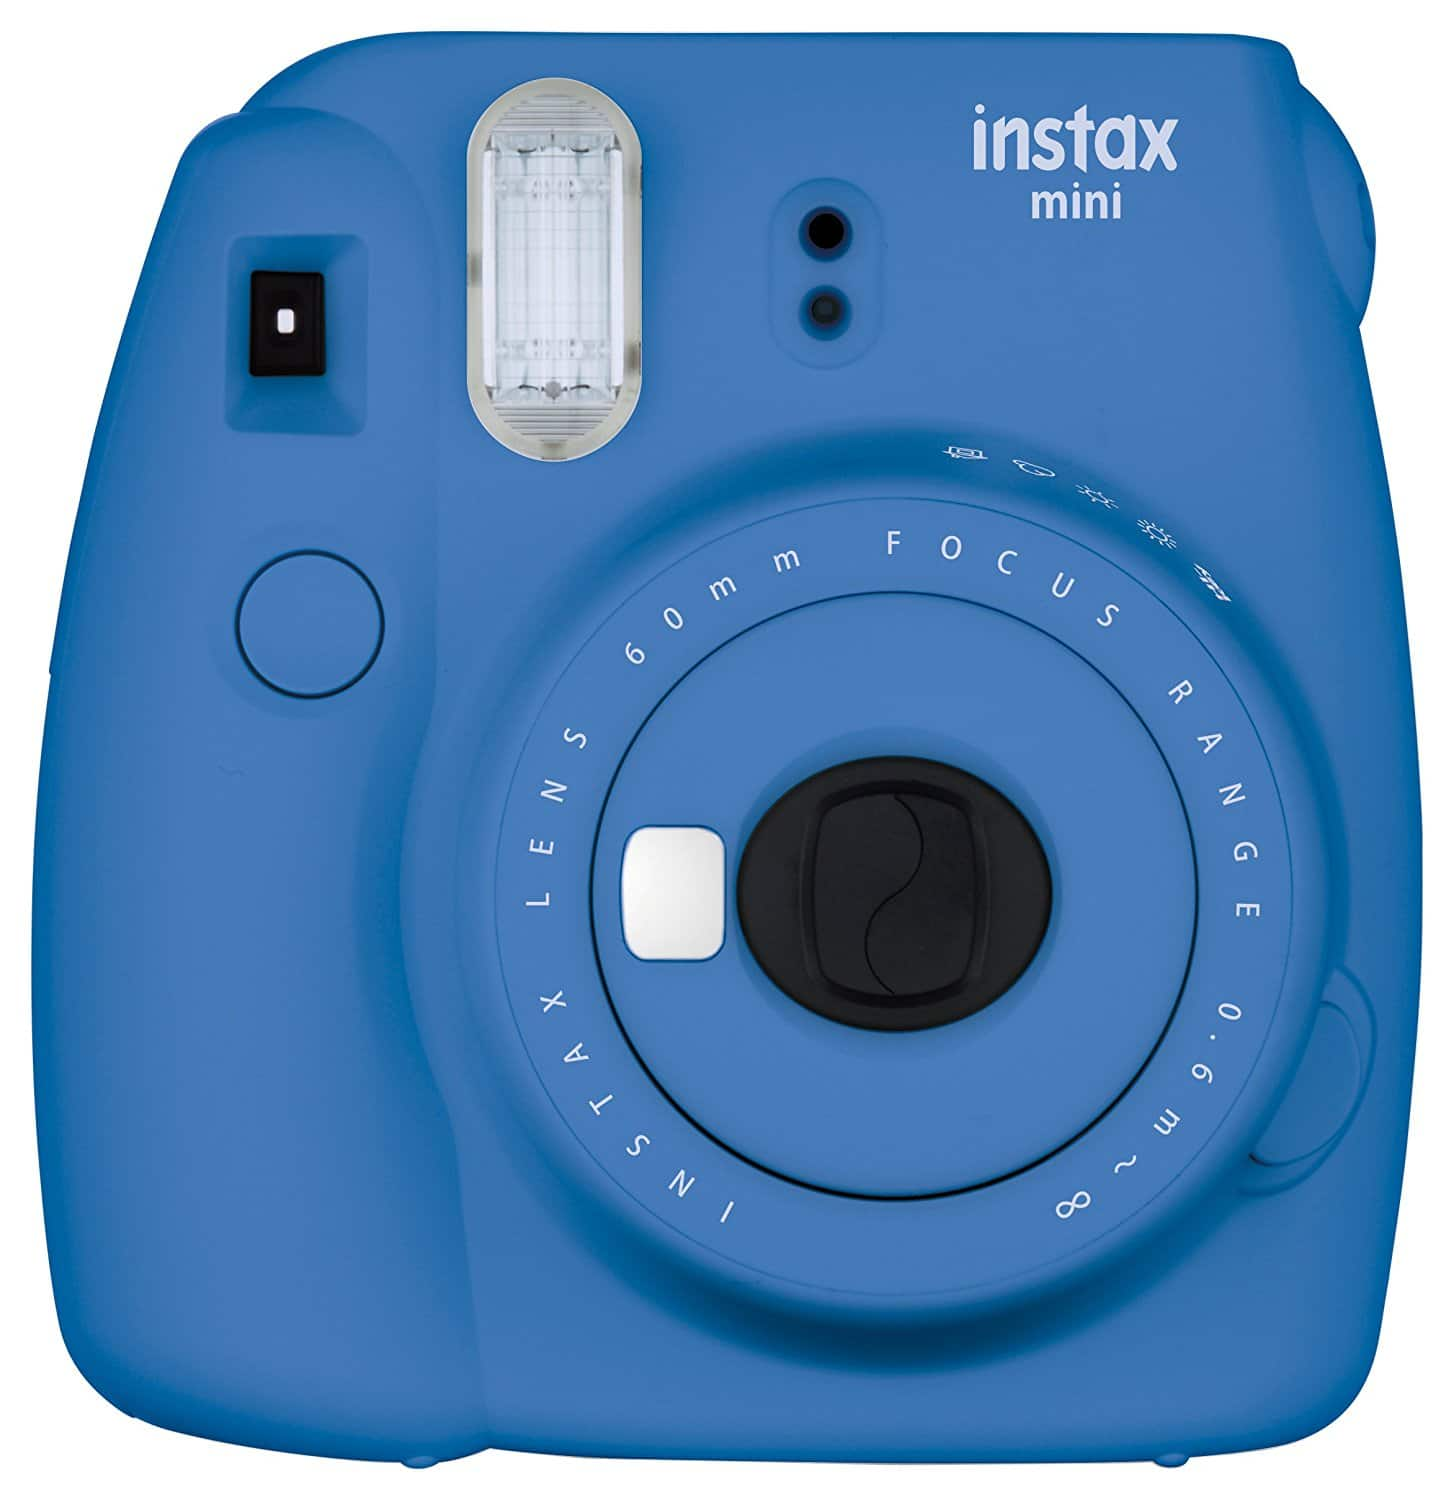 Fujifilm Instax Mini 9 Instant Camera - Cobalt Blue, $48.59 +tax after clipping 15% off coupon (YMMV) prime FS